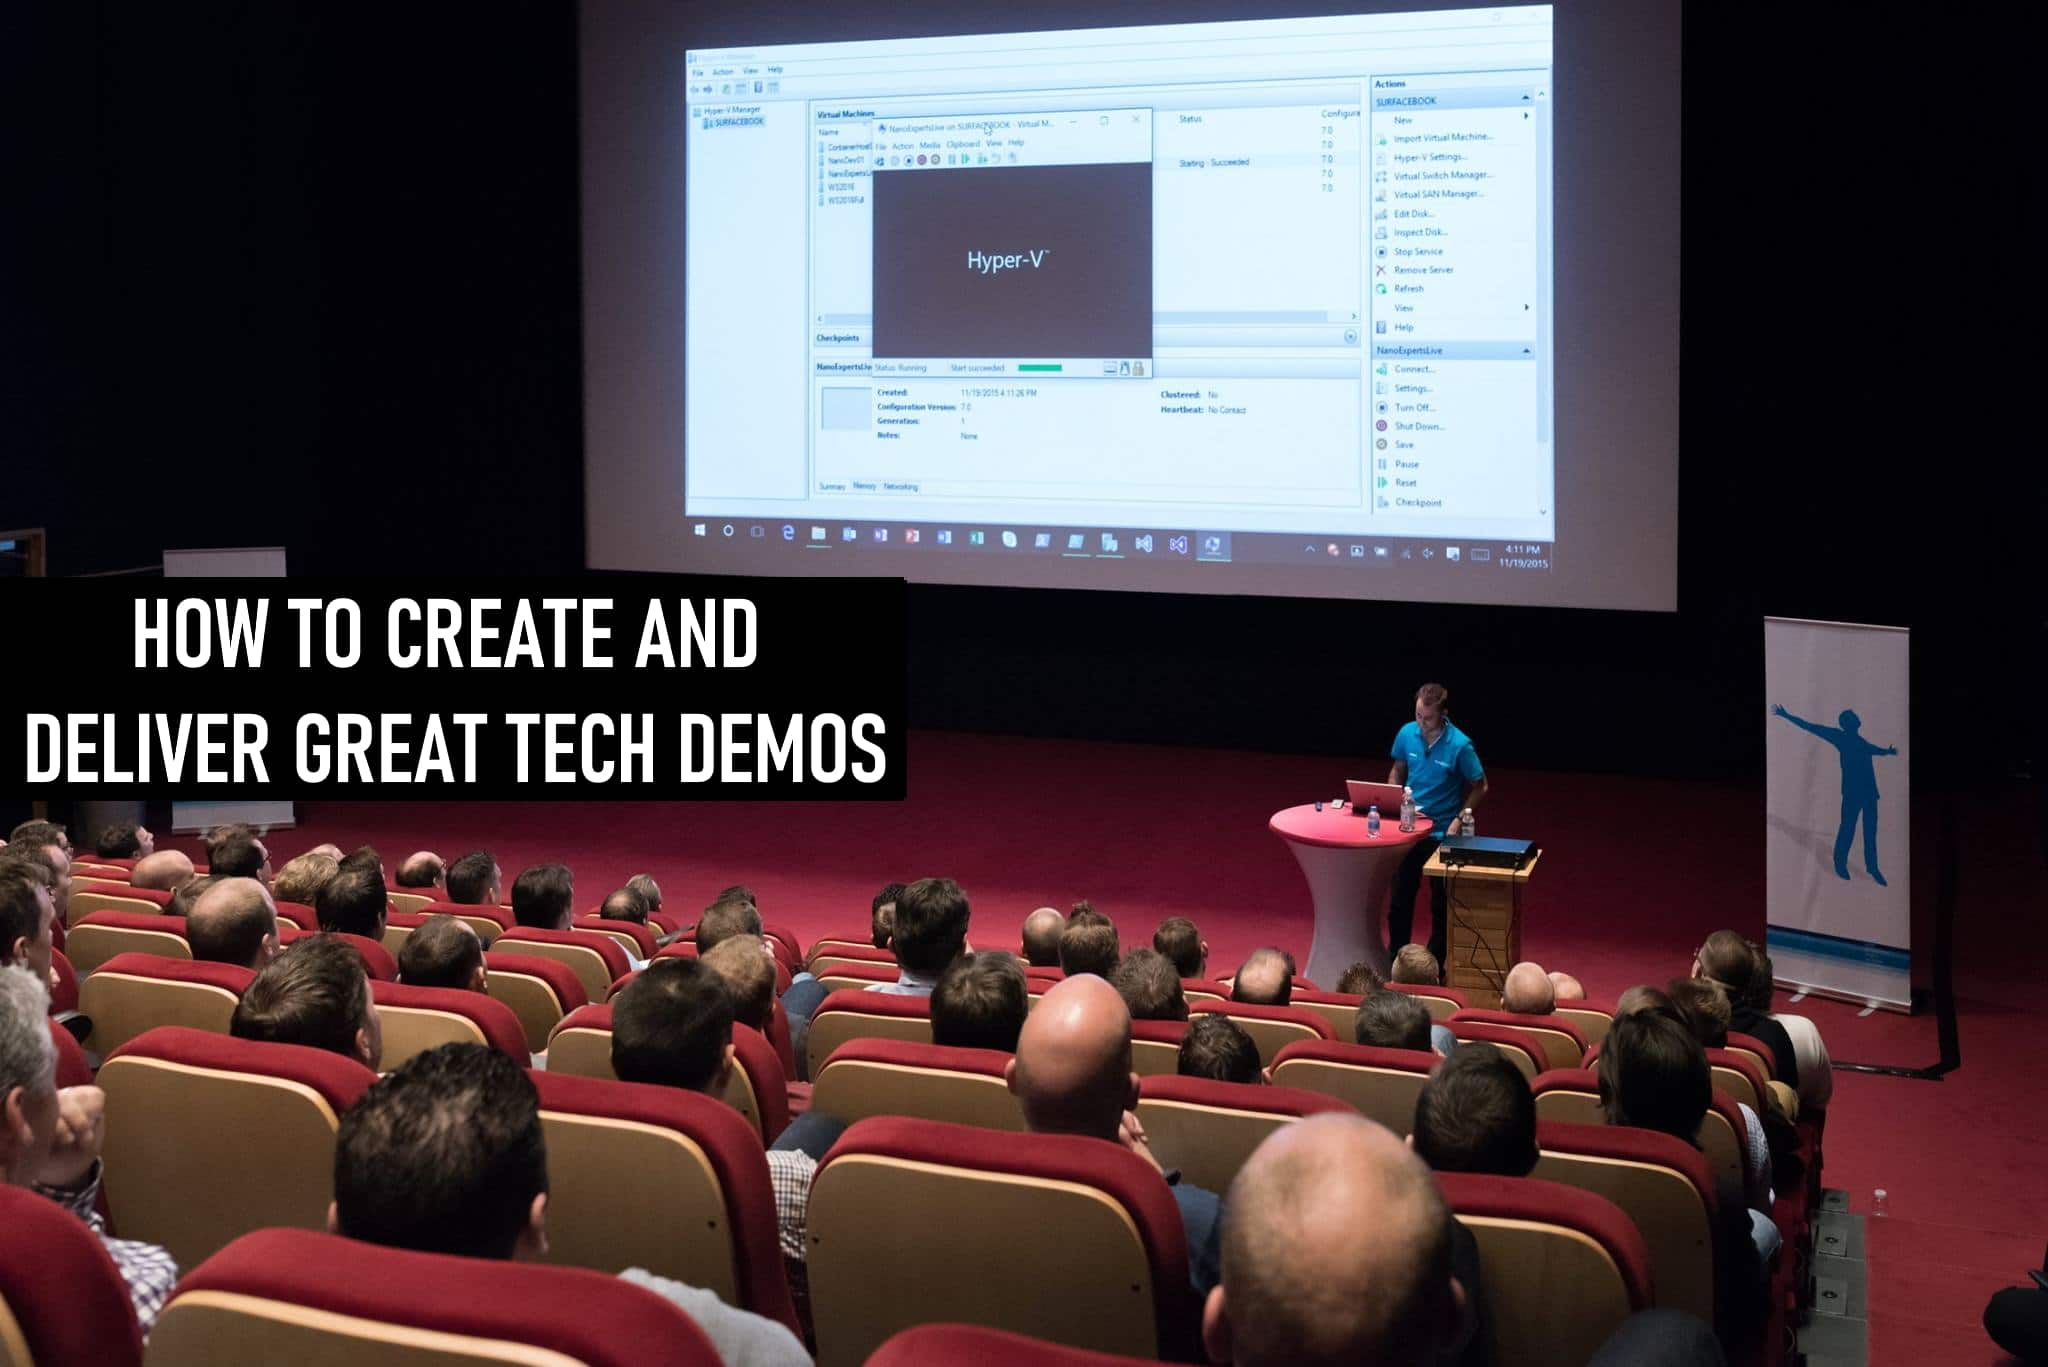 Presenting and Creating Great Tech Demos